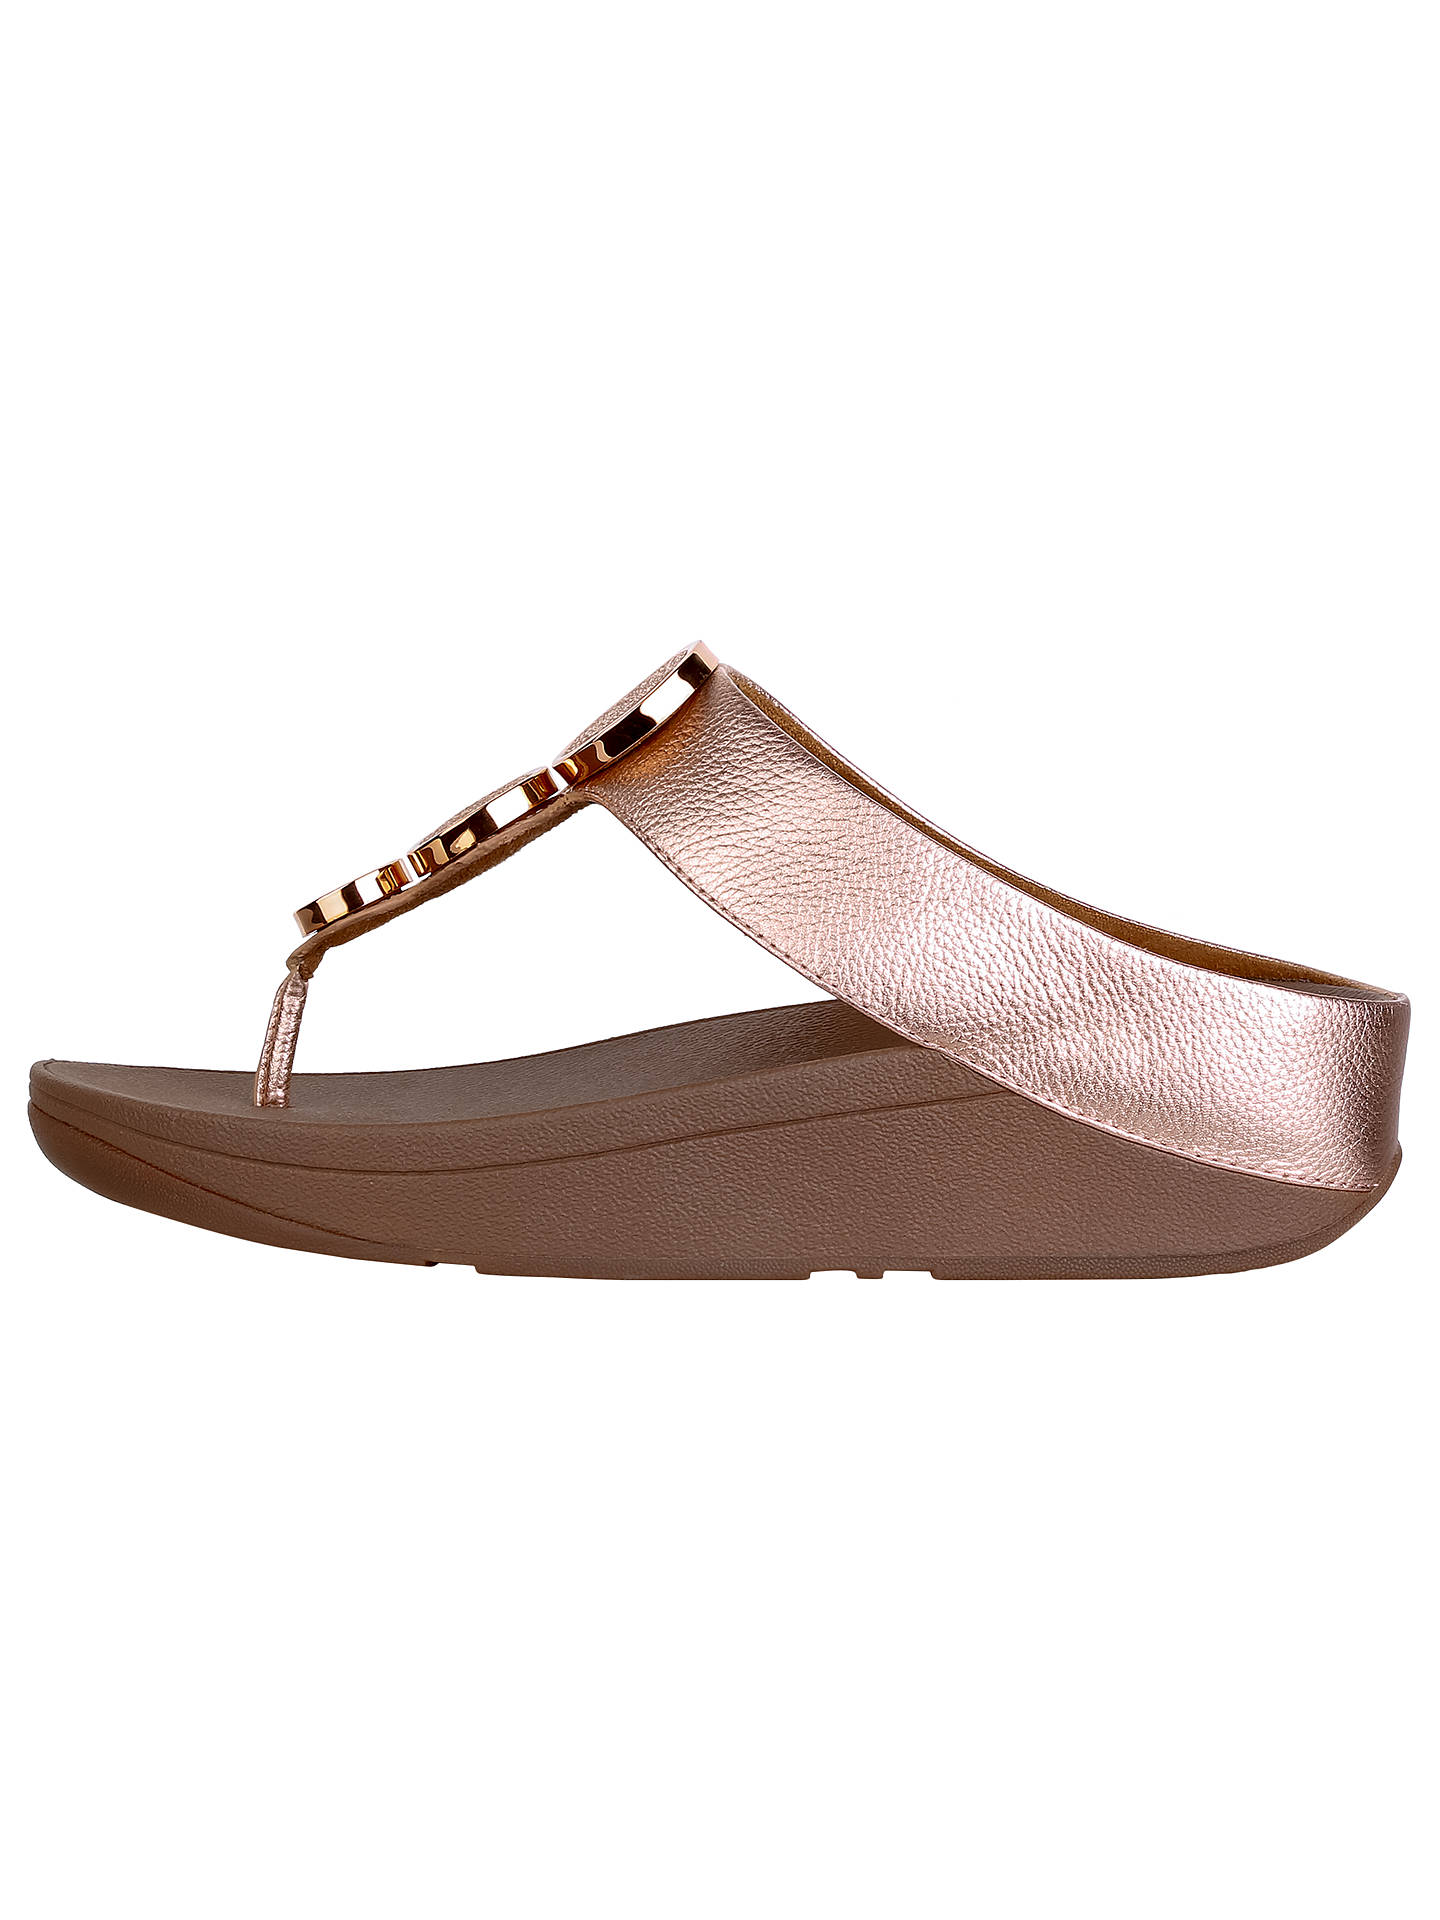 26d15e01476 FitFlop Halo Toe Post Sandals at John Lewis   Partners